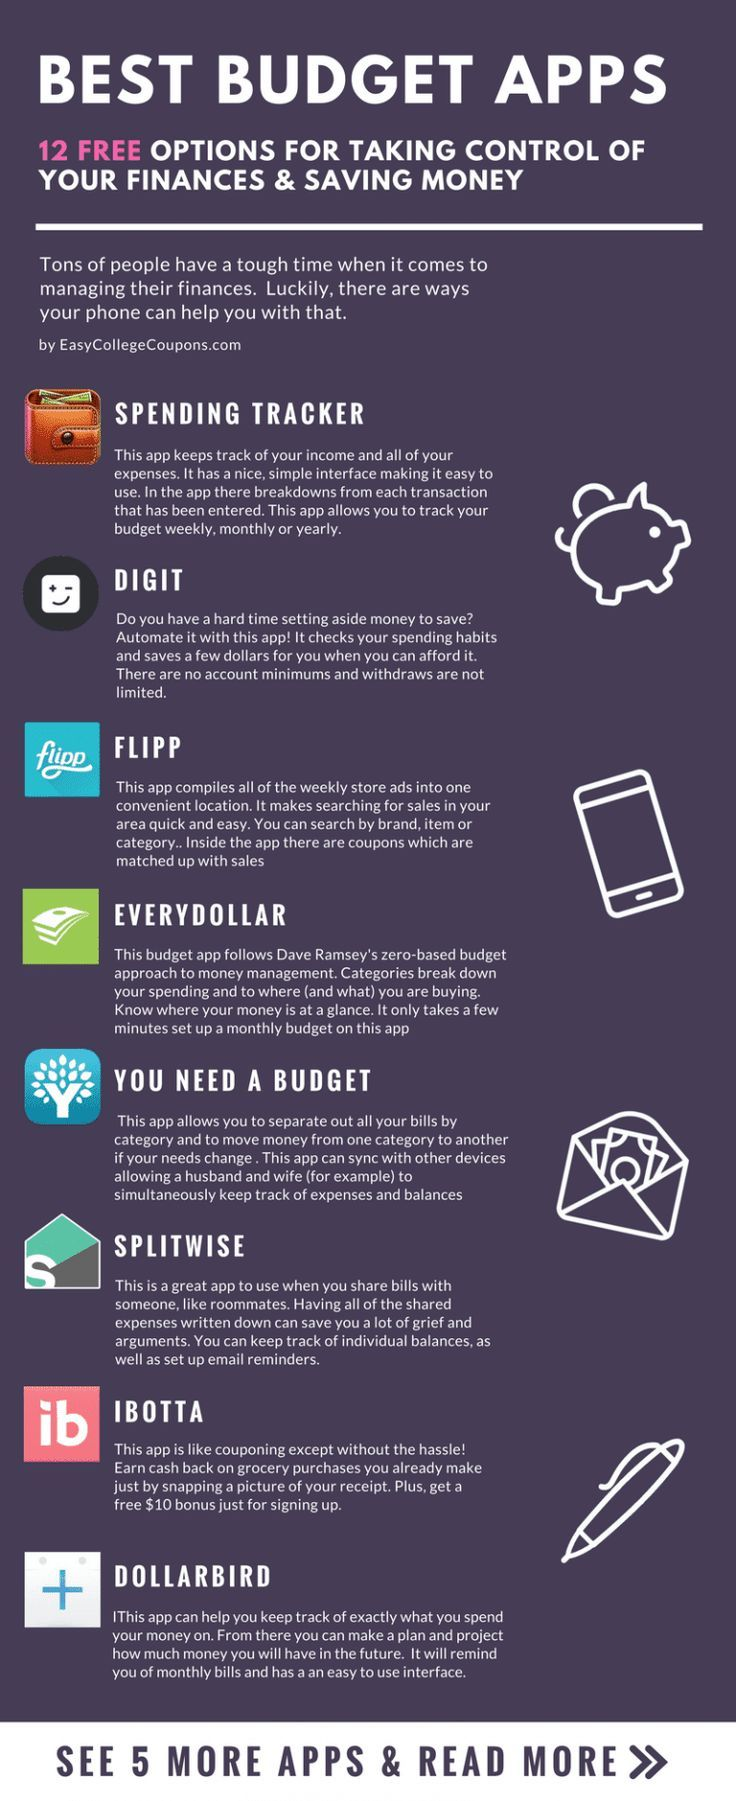 Best Budget Apps Best budget apps